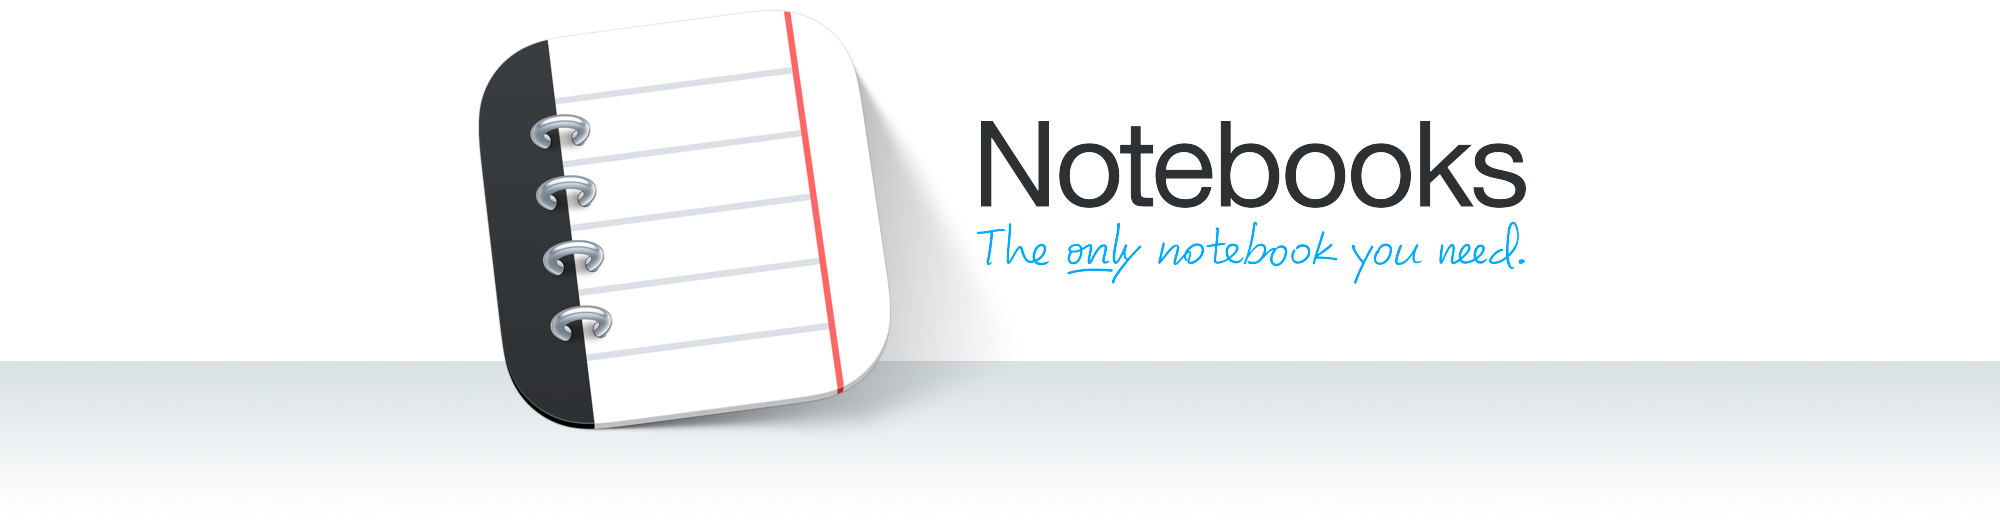 Notebooks, the only notebooks on you shelf